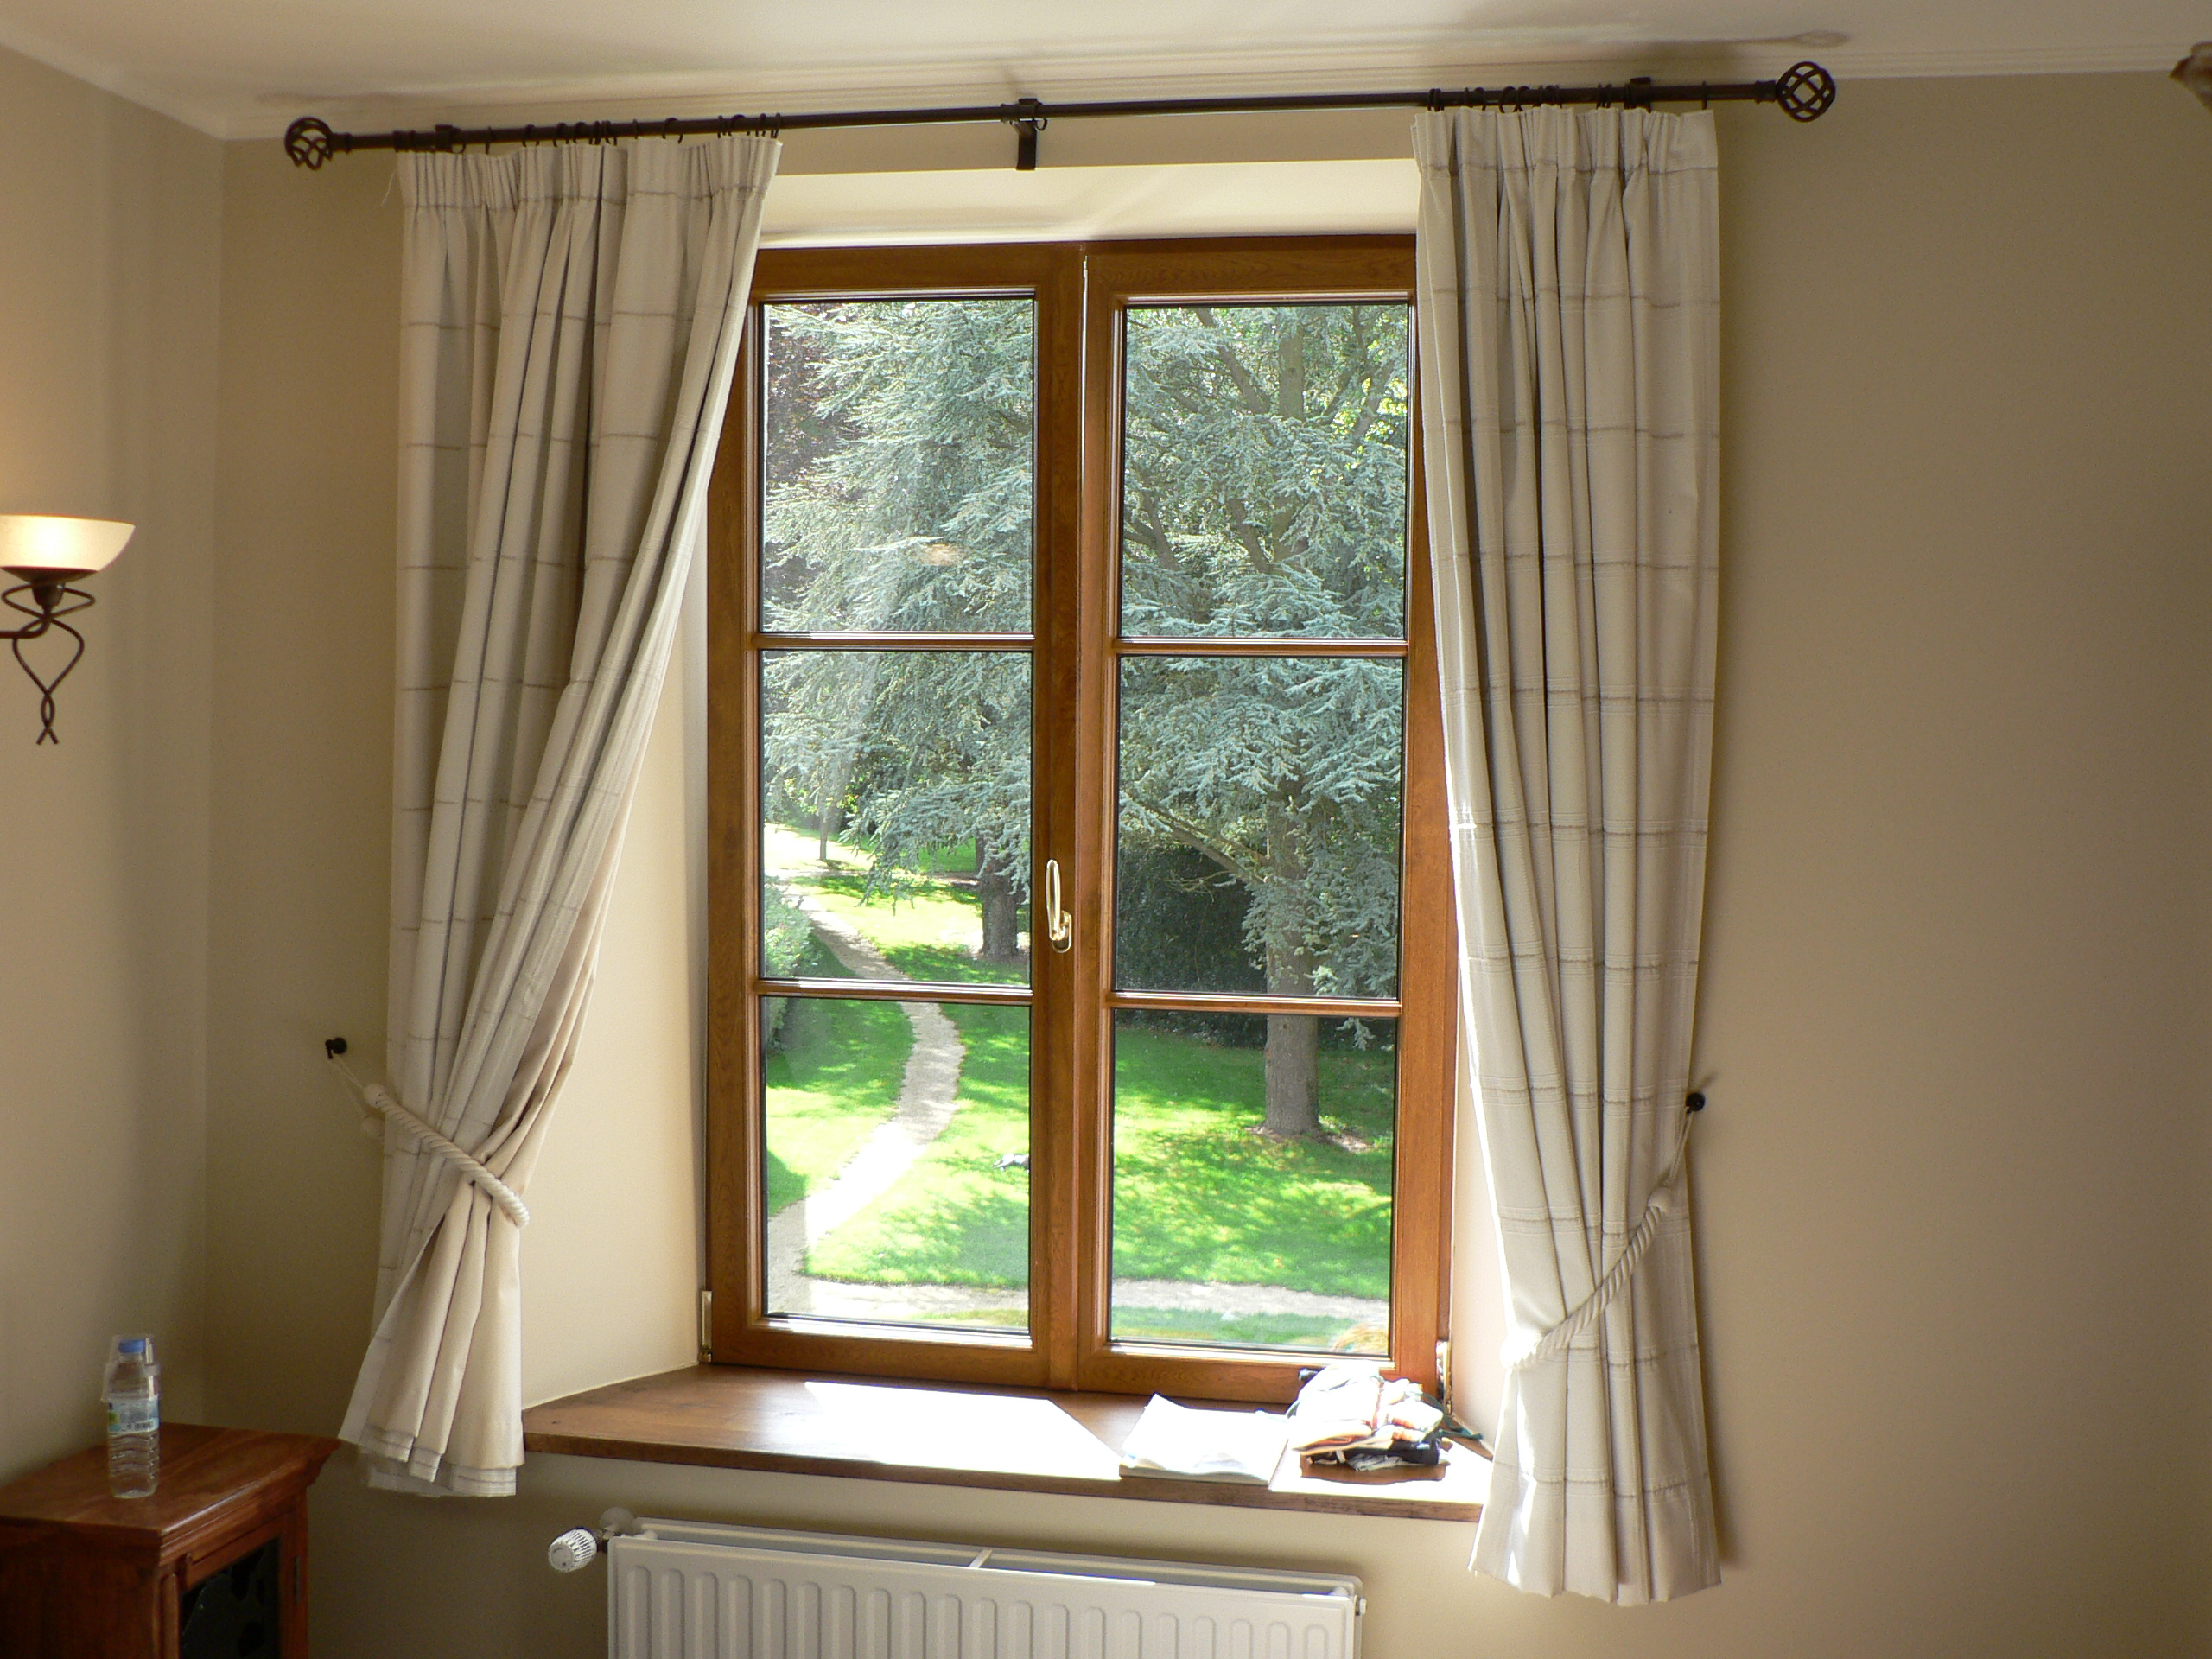 Inside house windows with curtains - Inside House Windows With Curtains 18